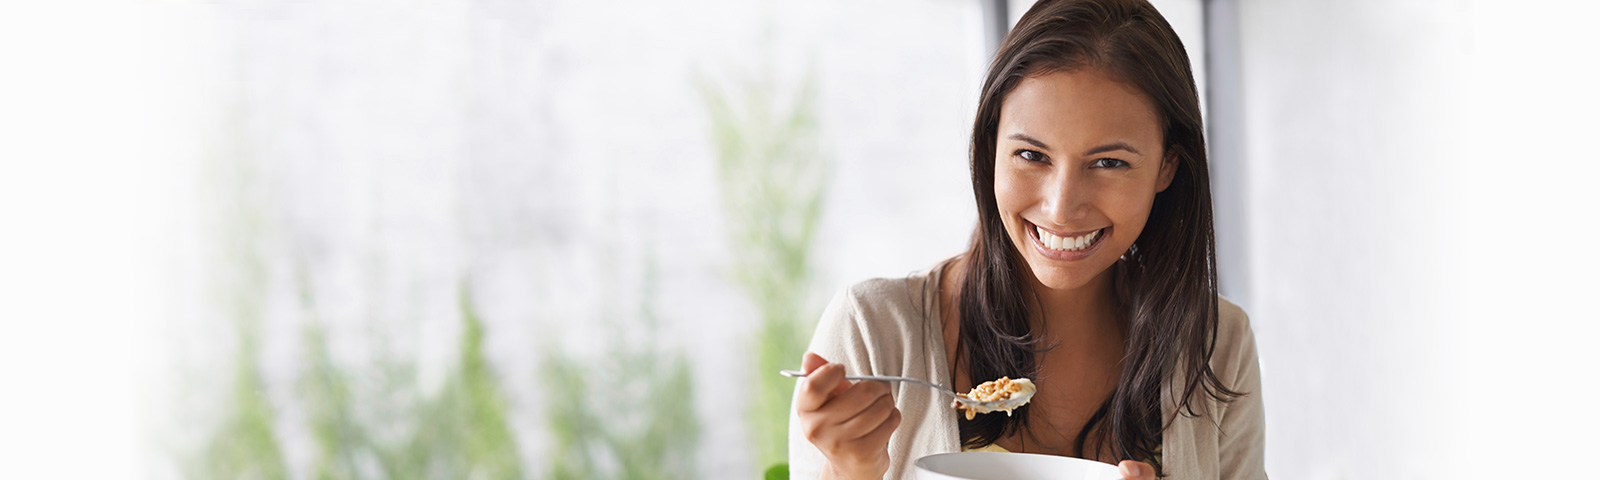 smiling woman with cereal